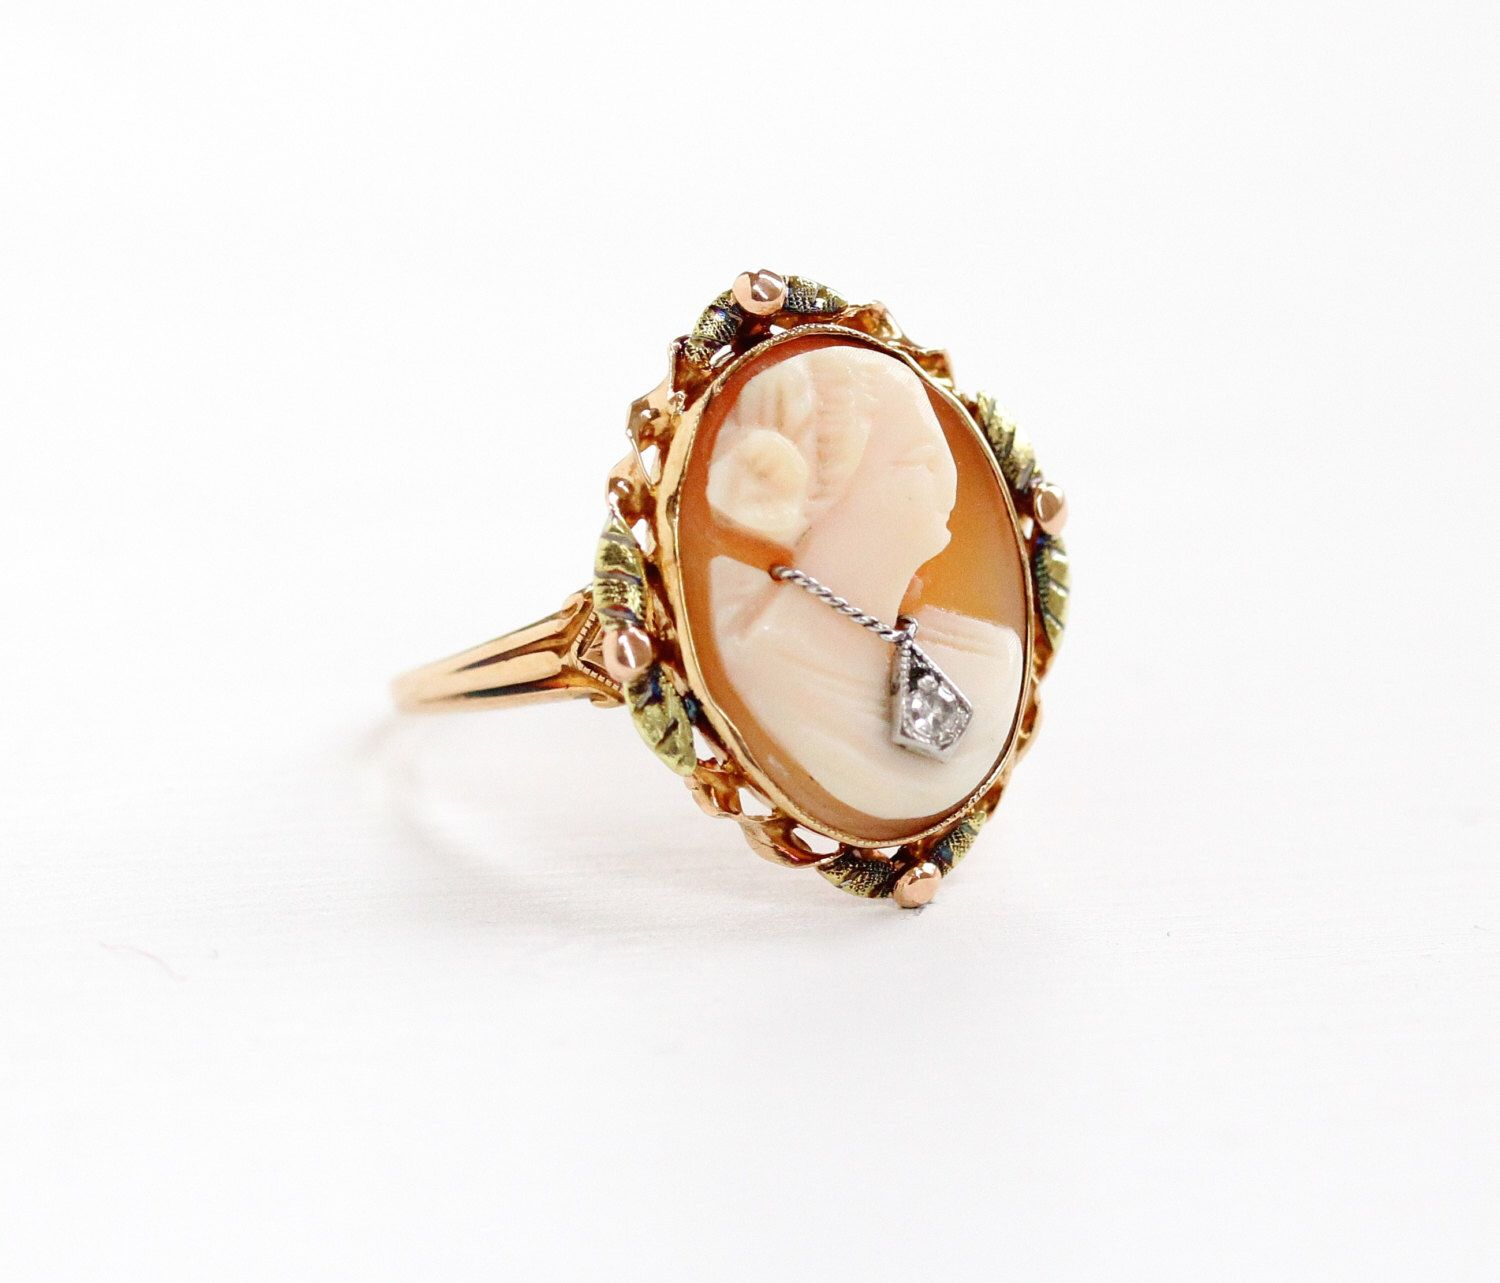 Sale Antique 10k Yellow & Rose Gold Diamond Cameo Ring Size 7